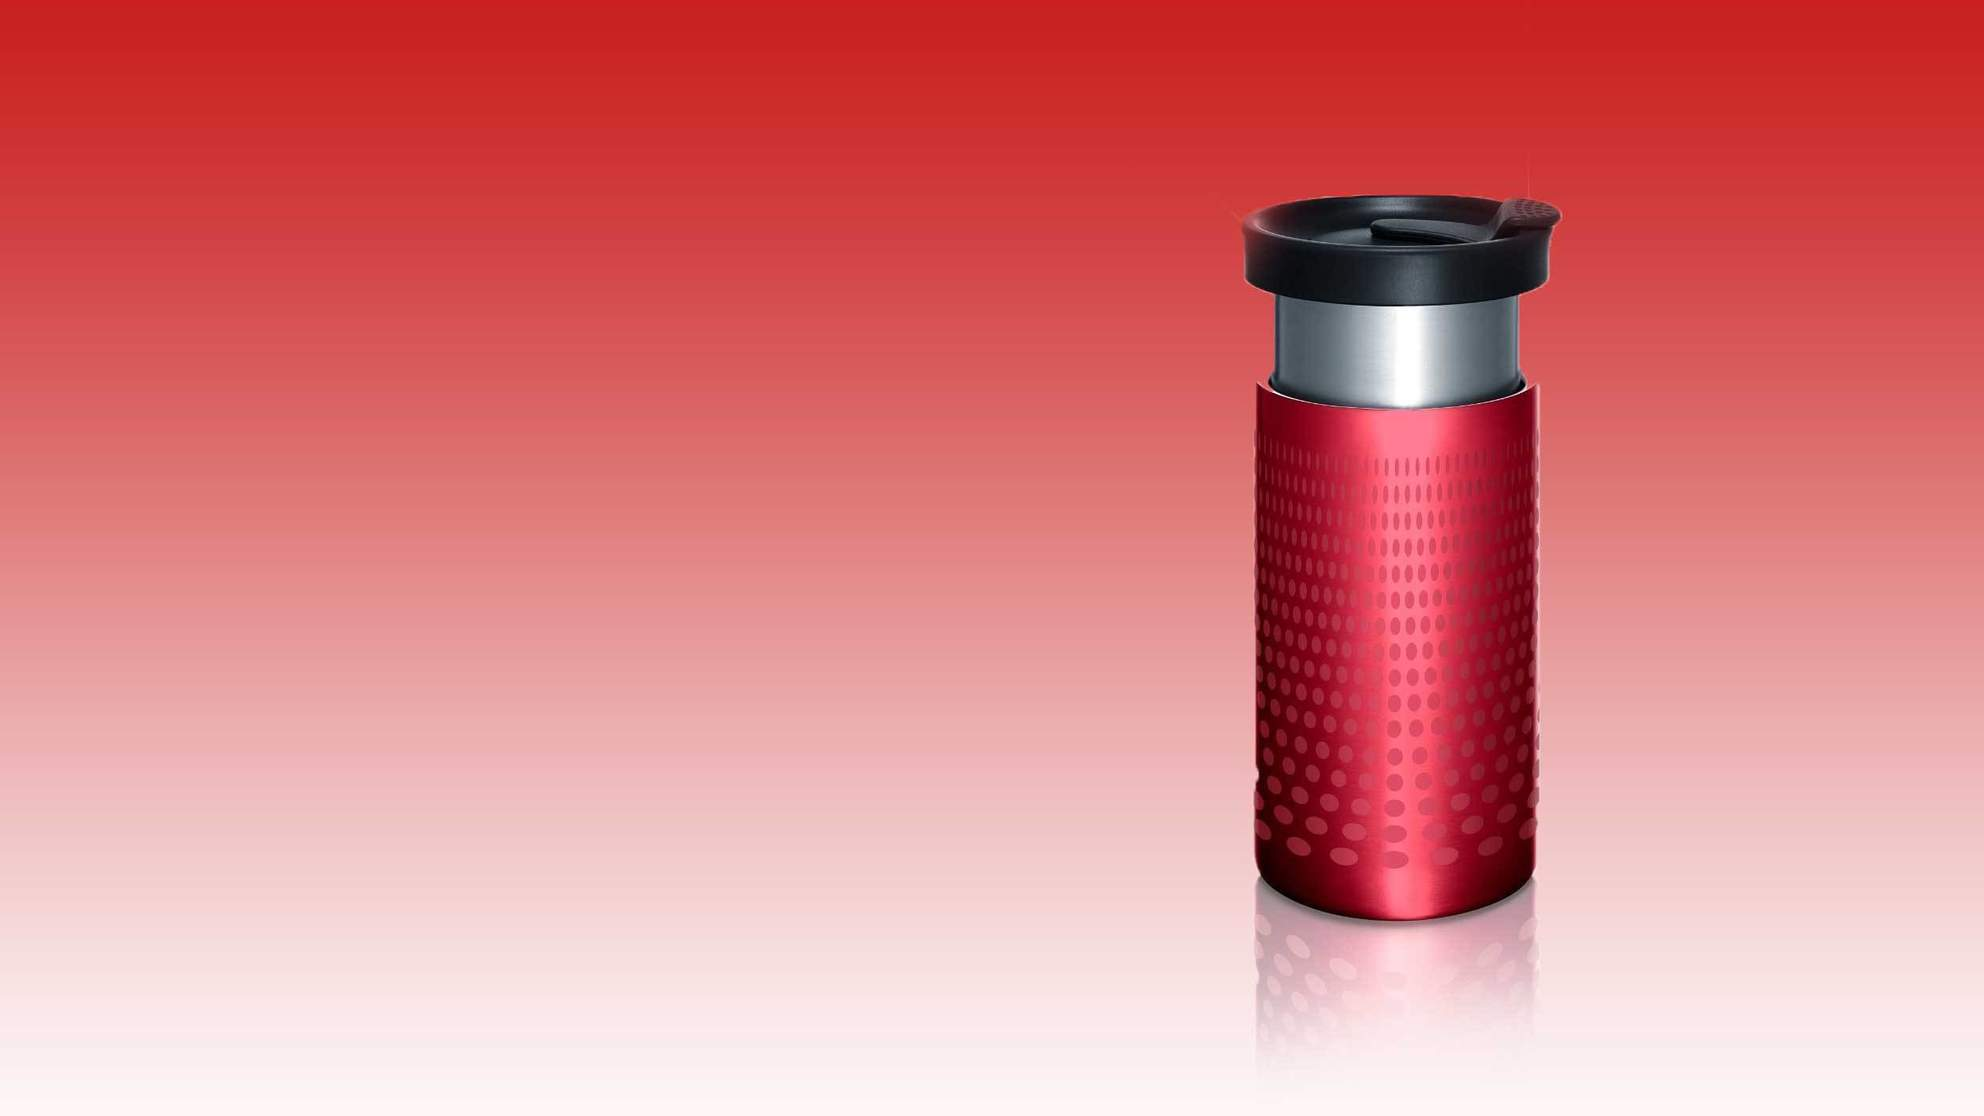 The Only Travel Mug You'll Ever Need Brews Coffee and Keeps It Hot for Hours